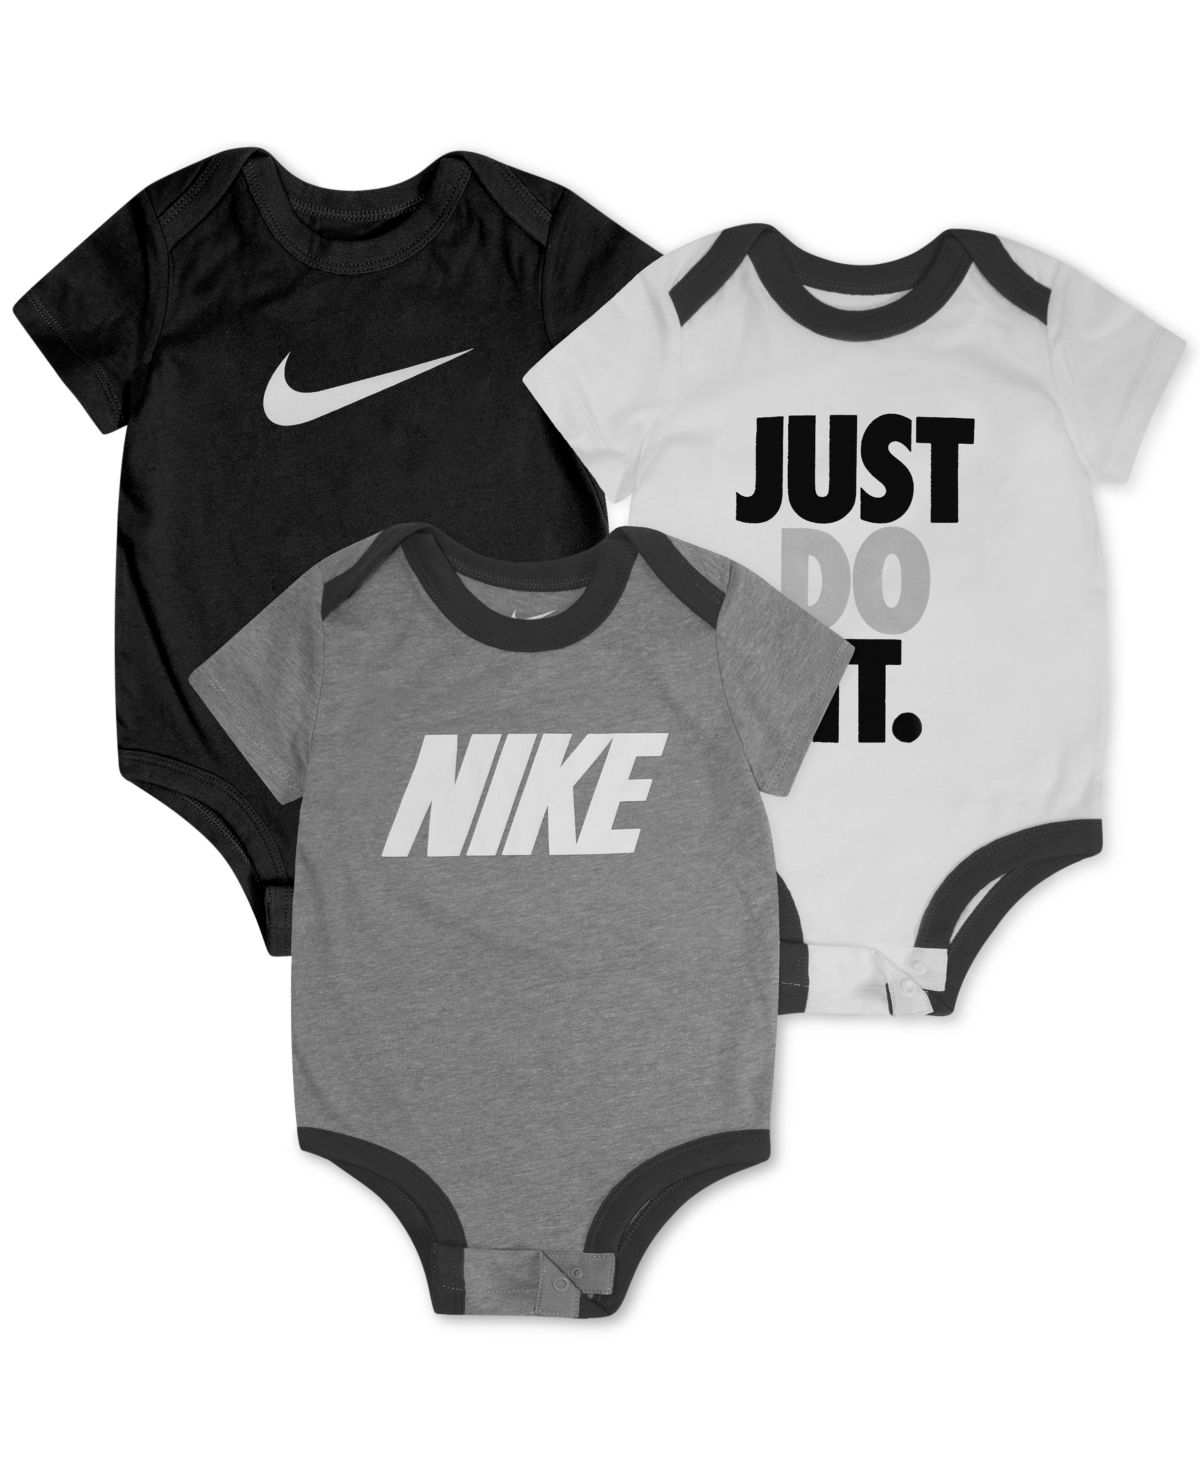 Nike Baby Boys 3 Pk Short Sleeve Logo Bodysuits Set Gray Baby Boy Nike Nike Baby Clothes Baby Nike